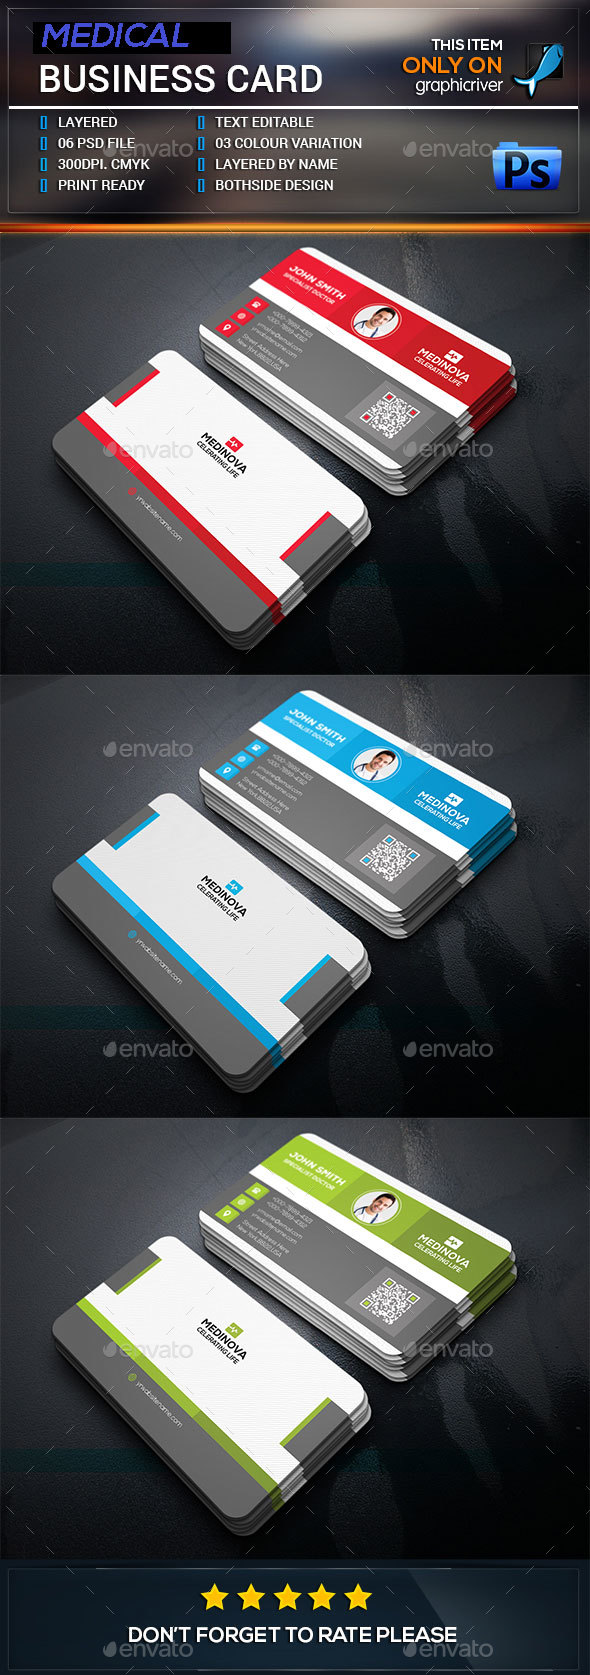 Medical Business Card By Elite Designer